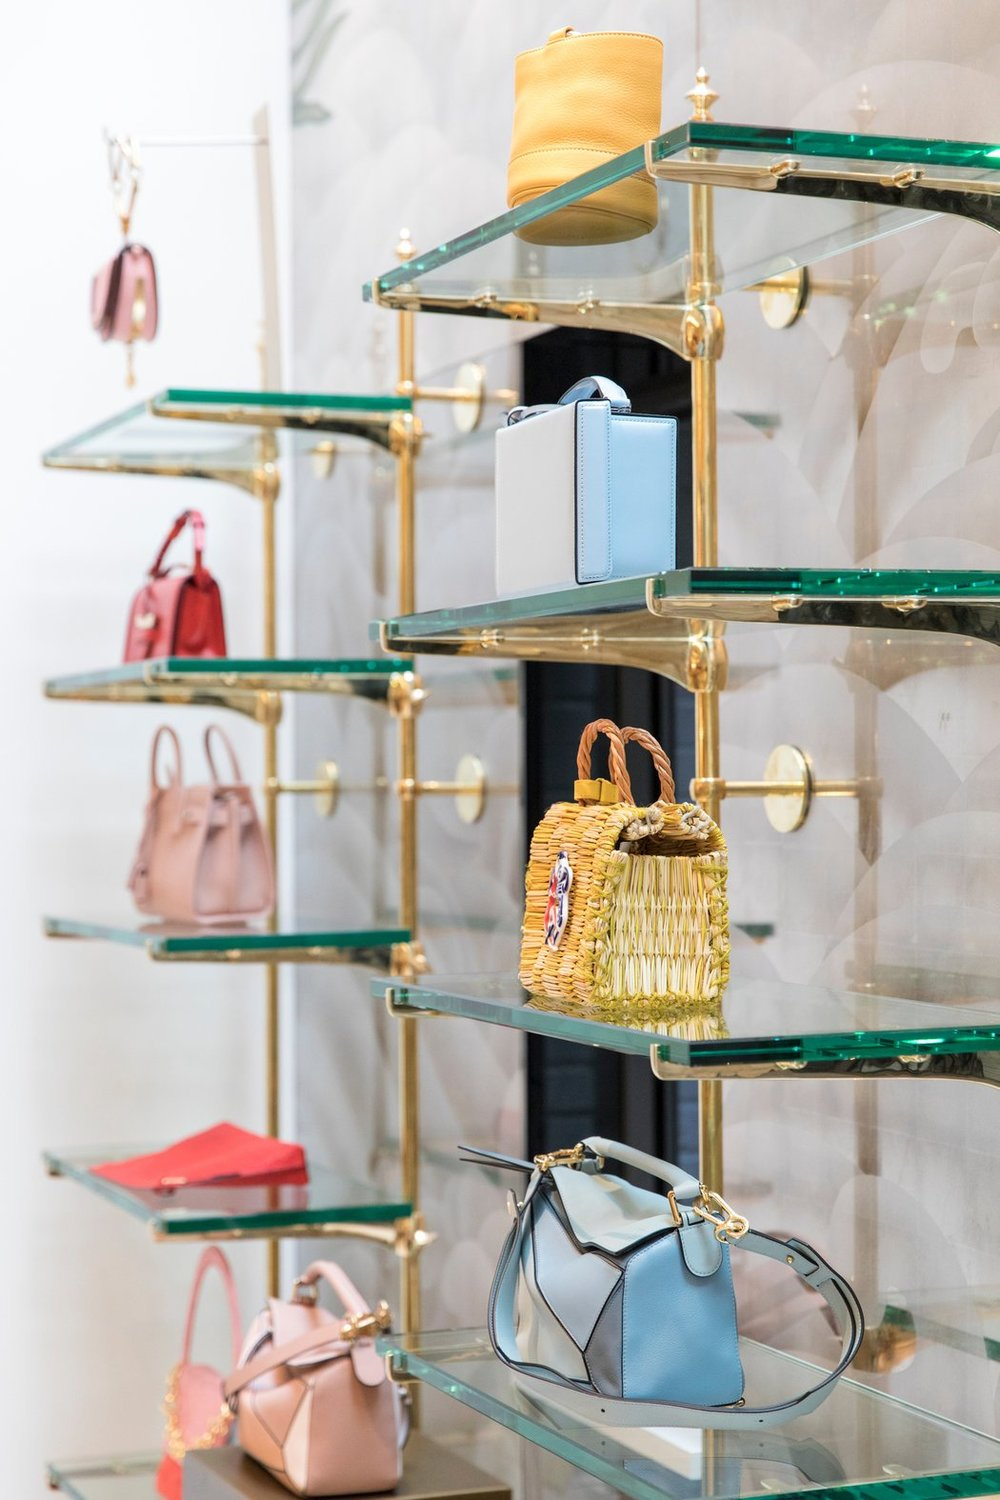 Handbags, on the first floor. CreditStefania Curto for The New York Times